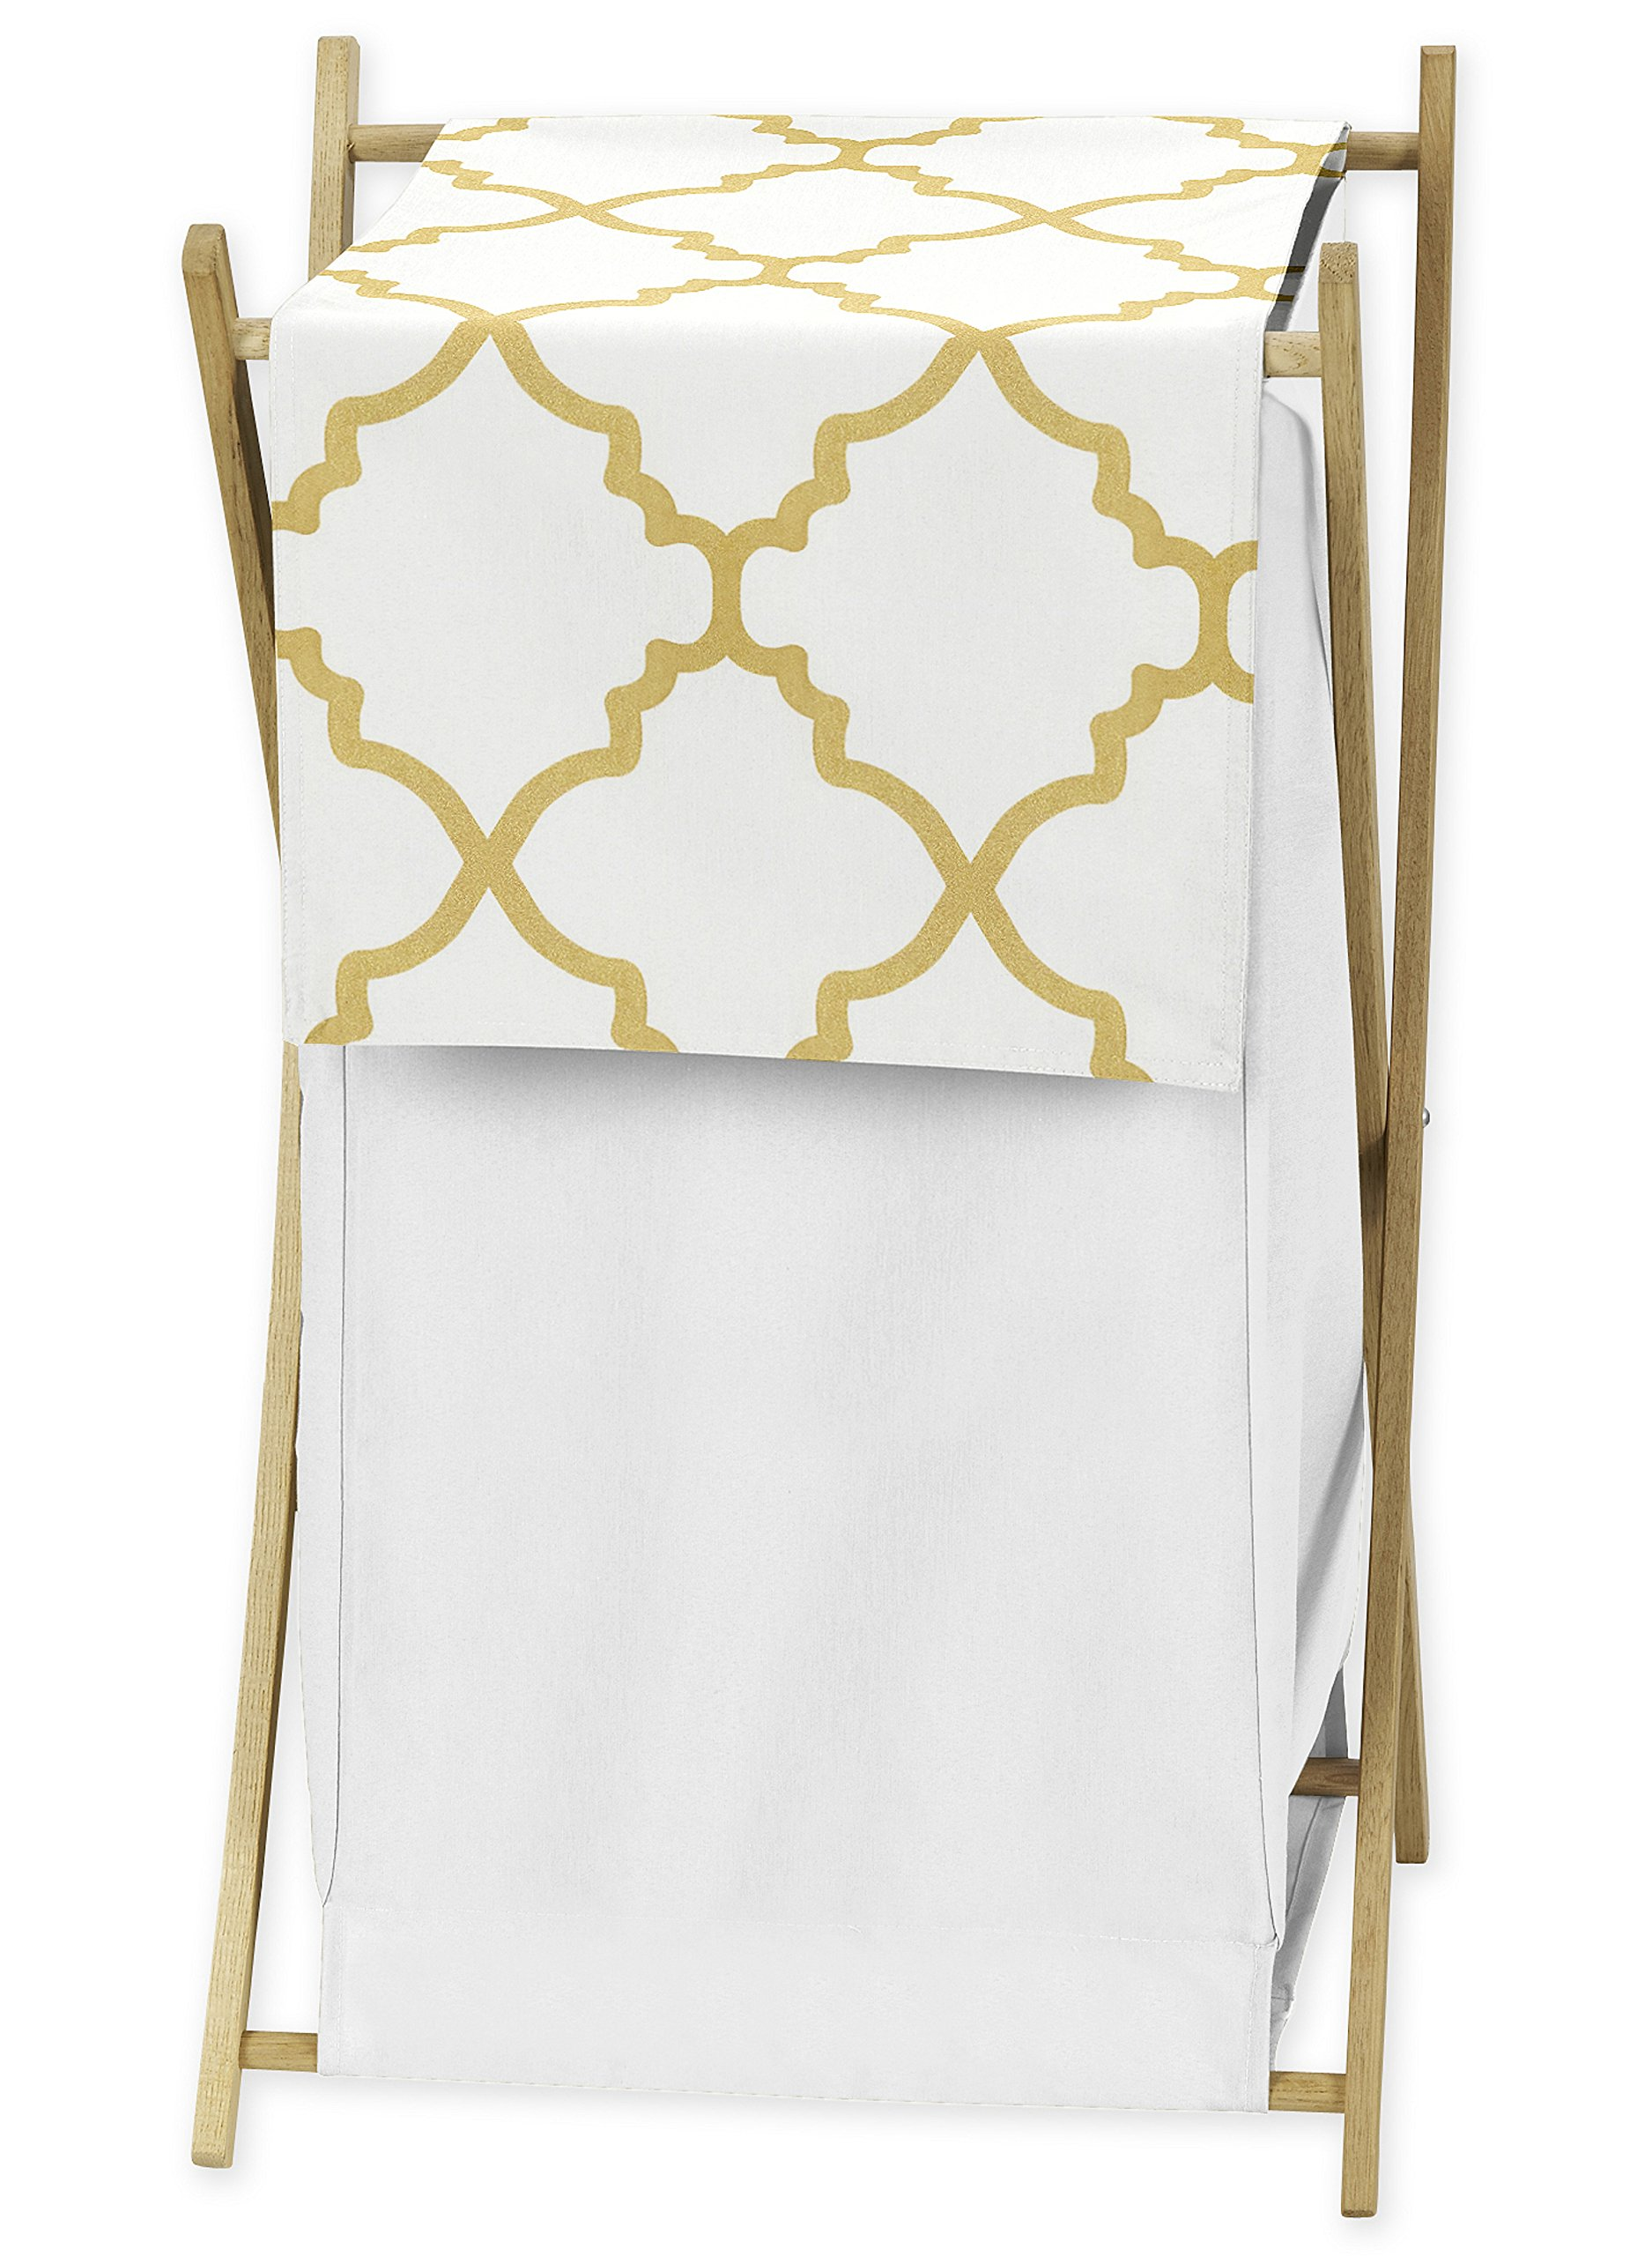 Sweet Jojo Designs Clothes Laundry Hamper for White and Gold Trellis Print Lattice Girls Bedding Collection